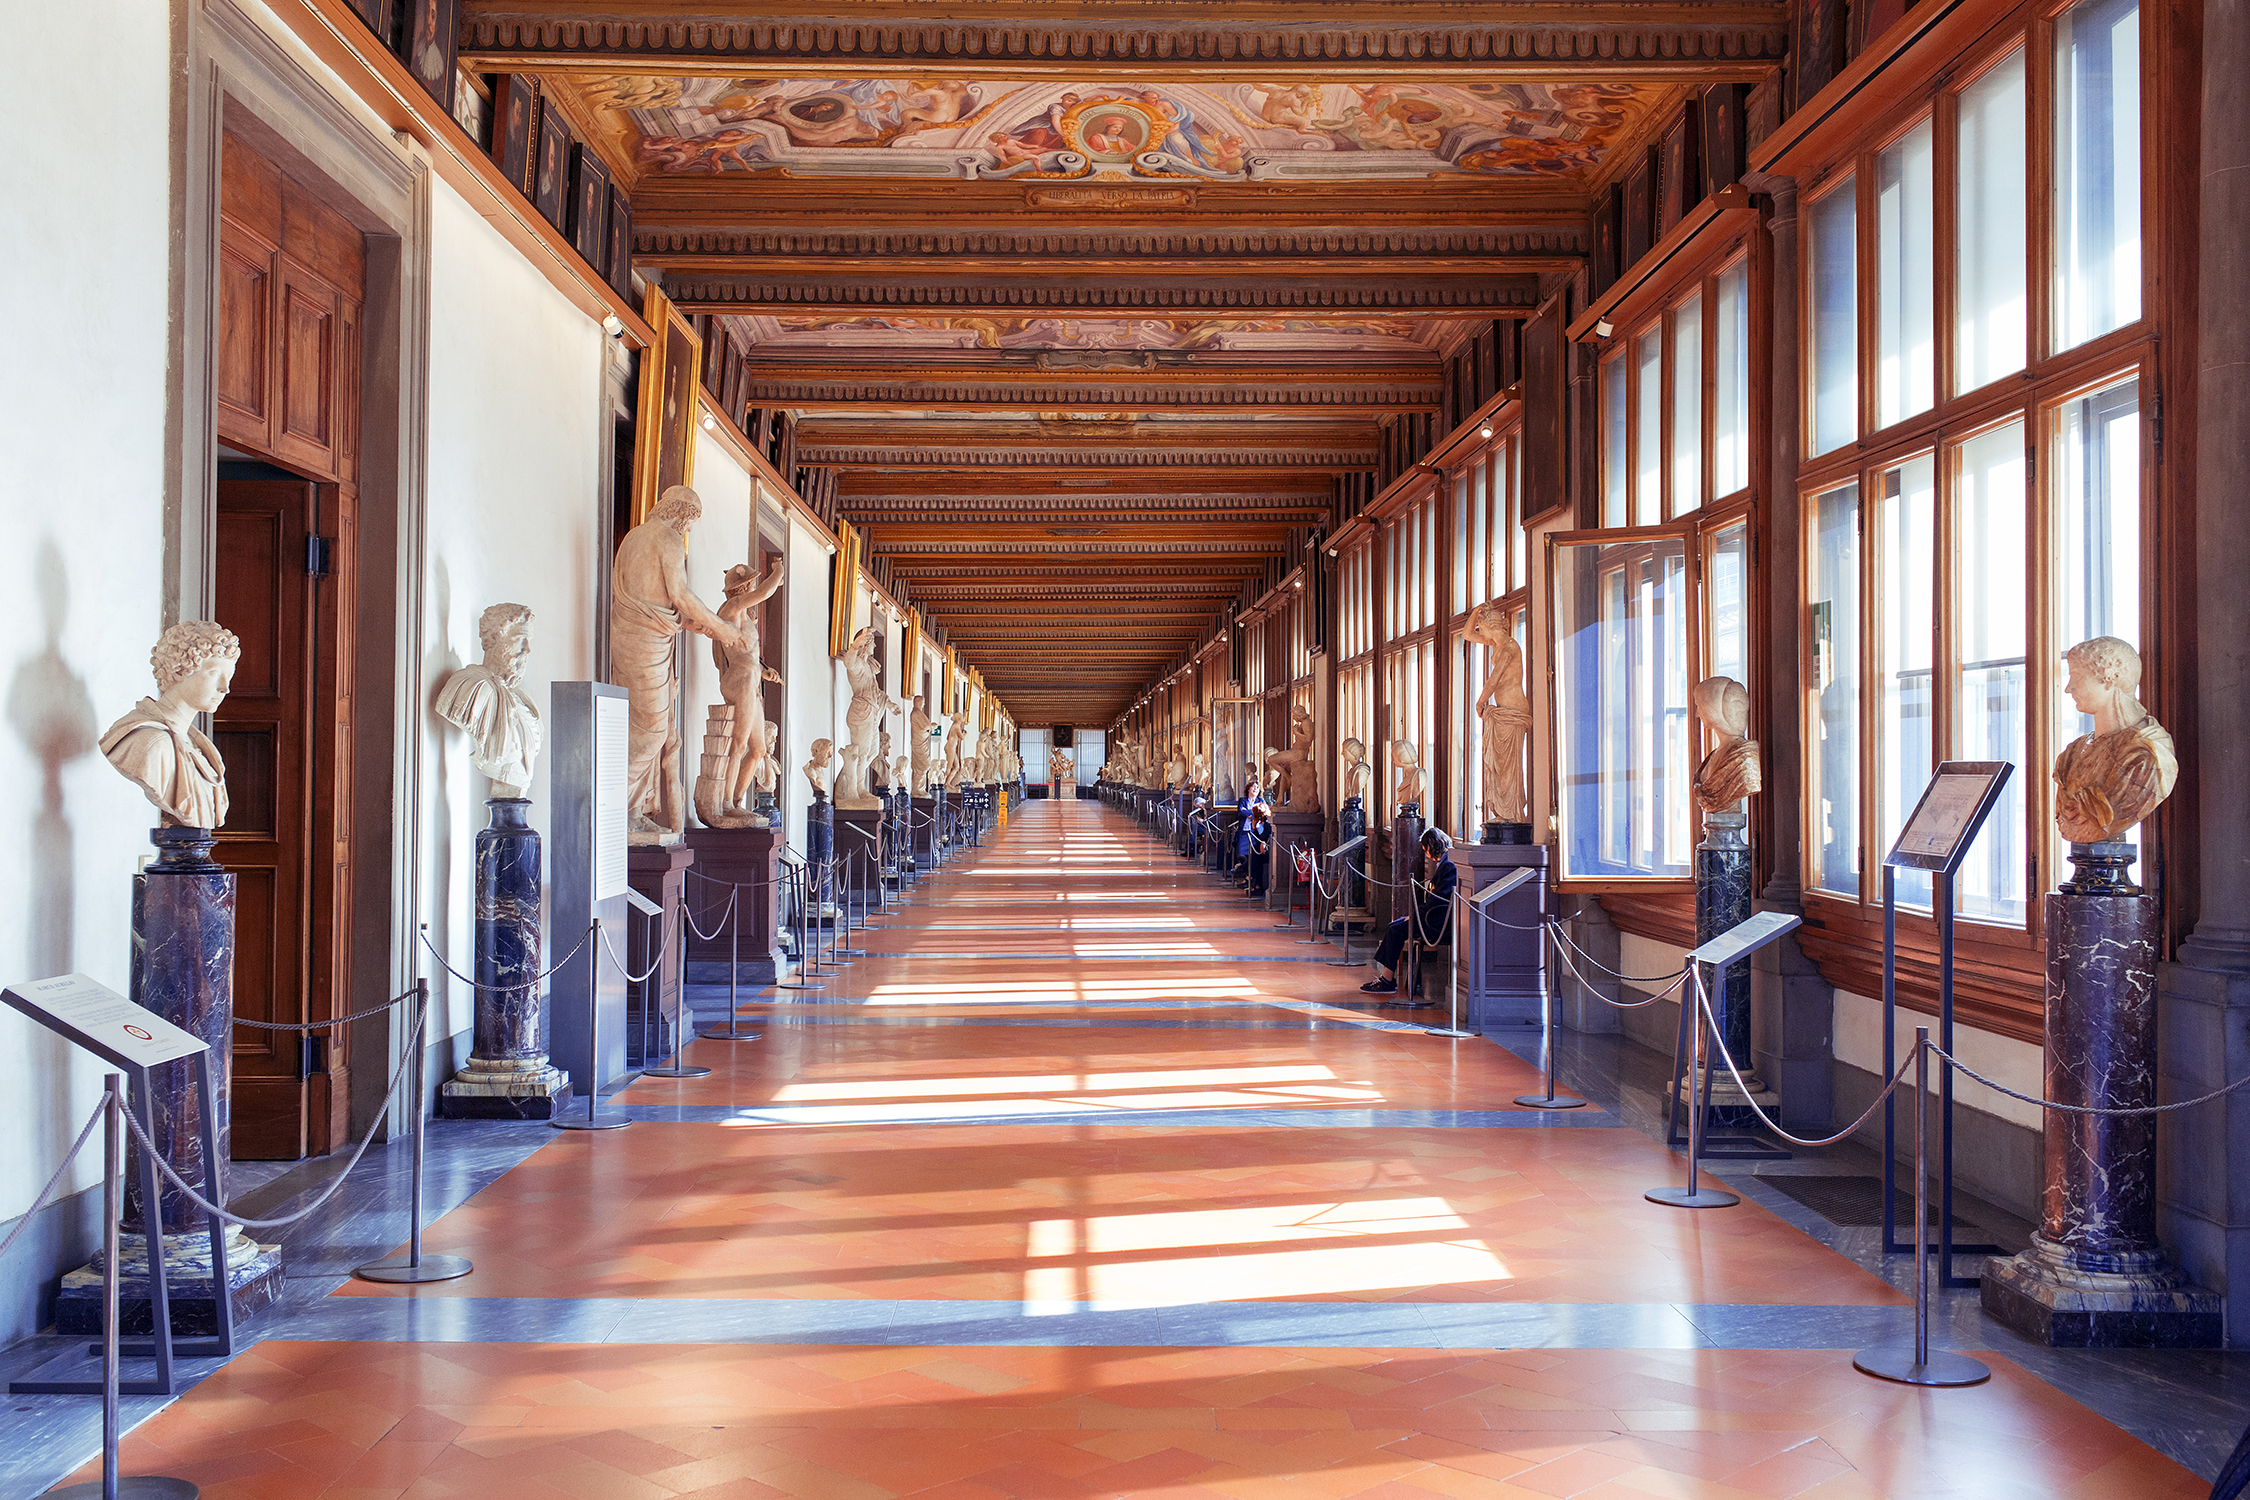 One of the corridors in the Uffizi Gallery, in Florence.